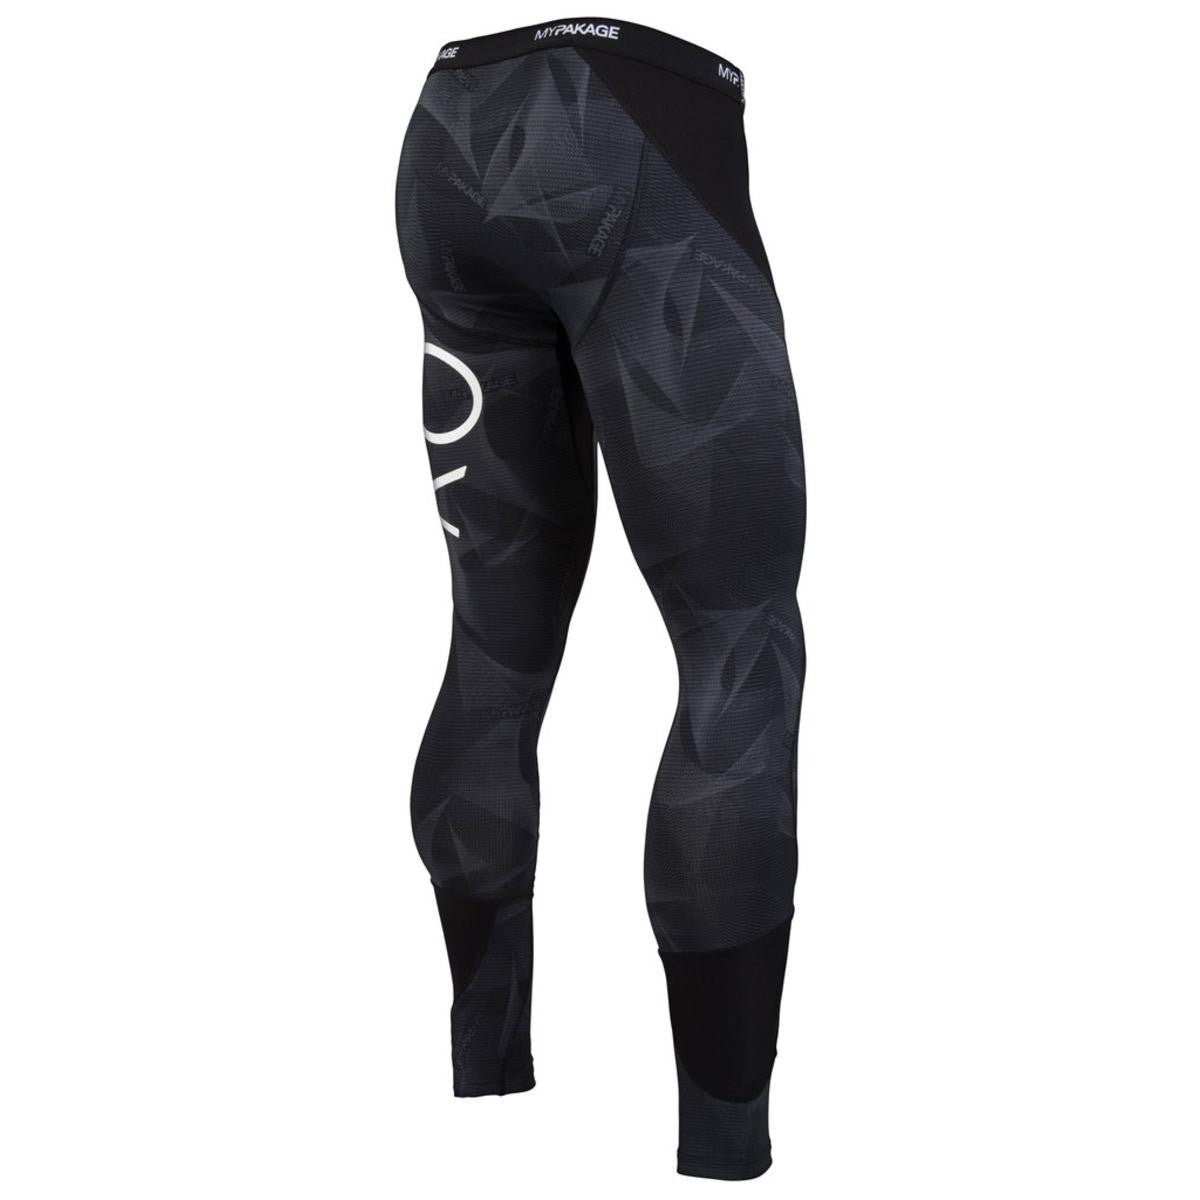 MyPakage Pro-X Full Length Men's Compression Tights